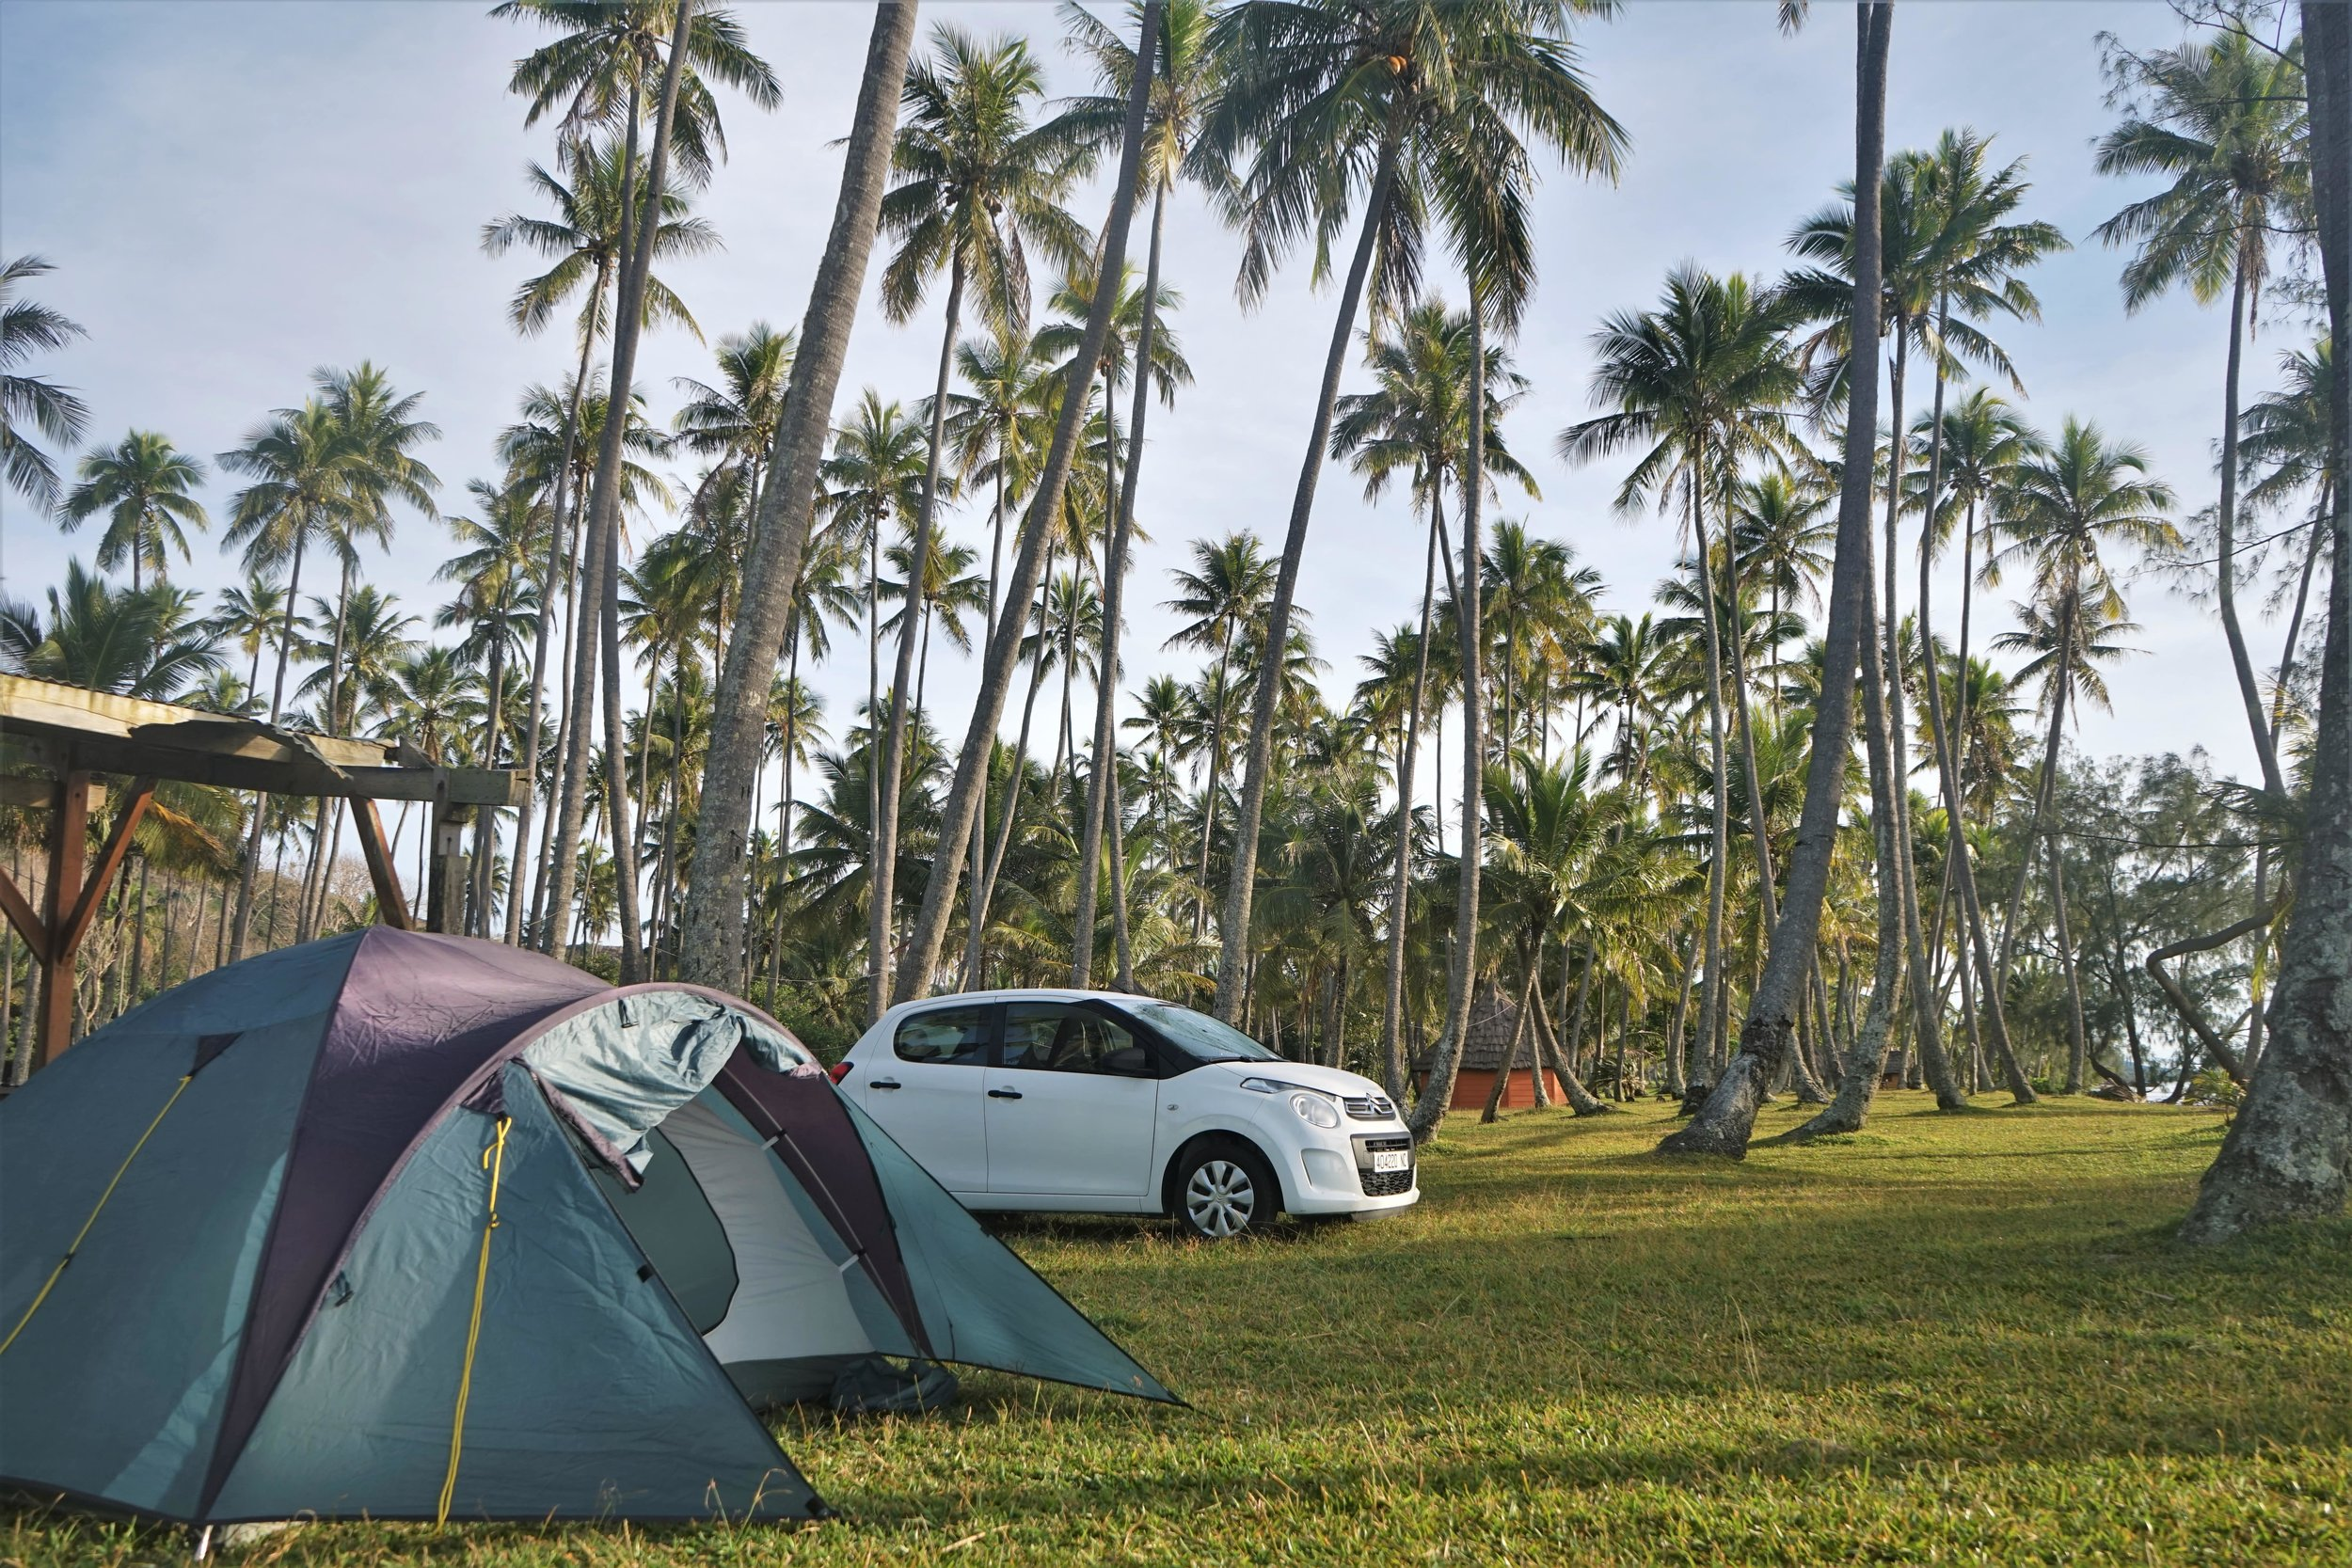 Camping in new Caledonia is one of our best New Caledonia travel tips.